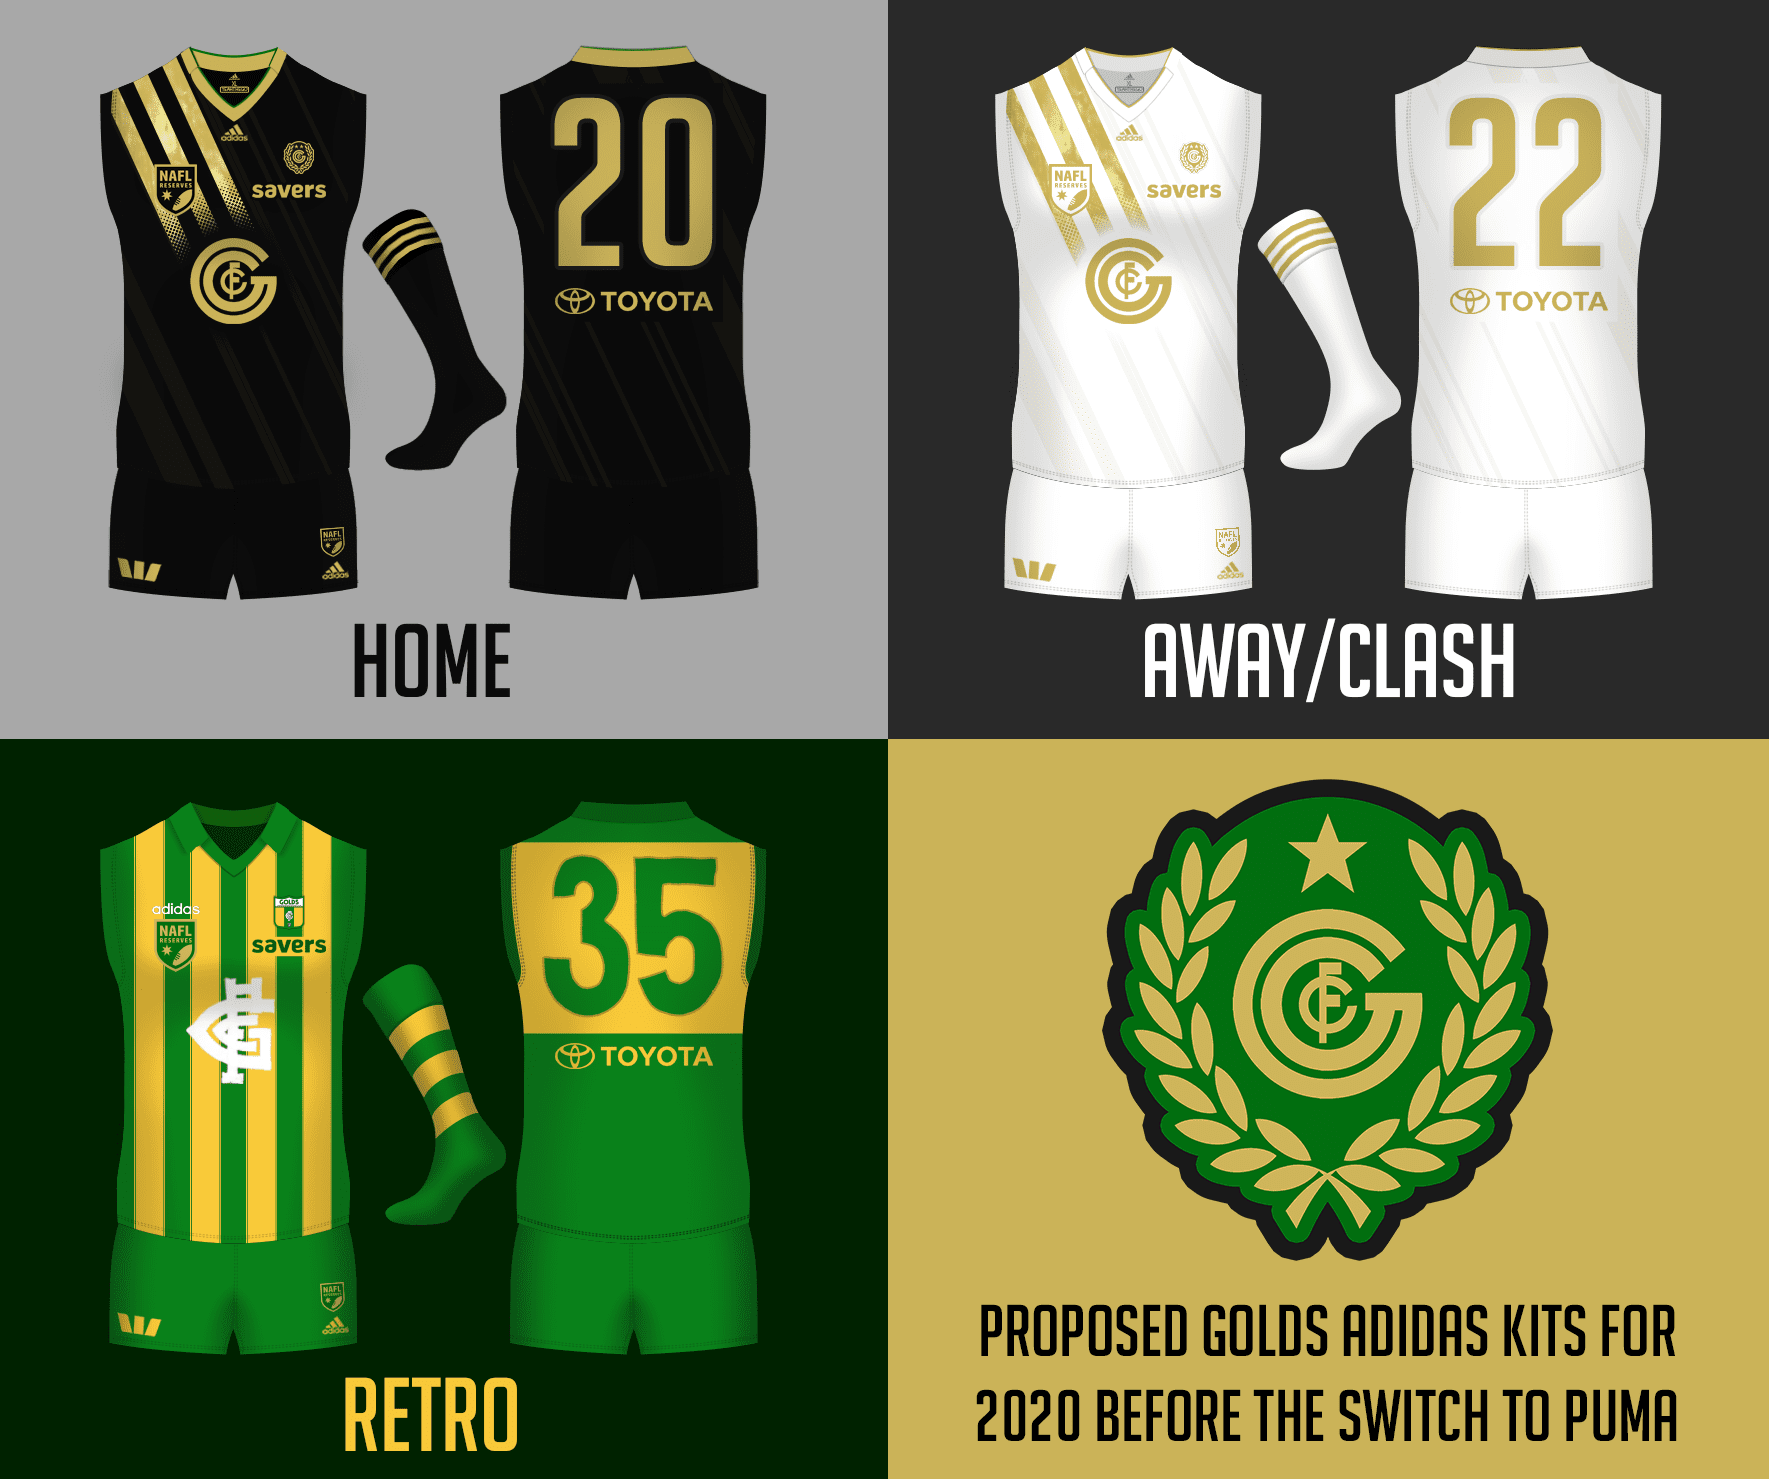 Greensborough-Golds-Rejected-Adidas-Kits.png